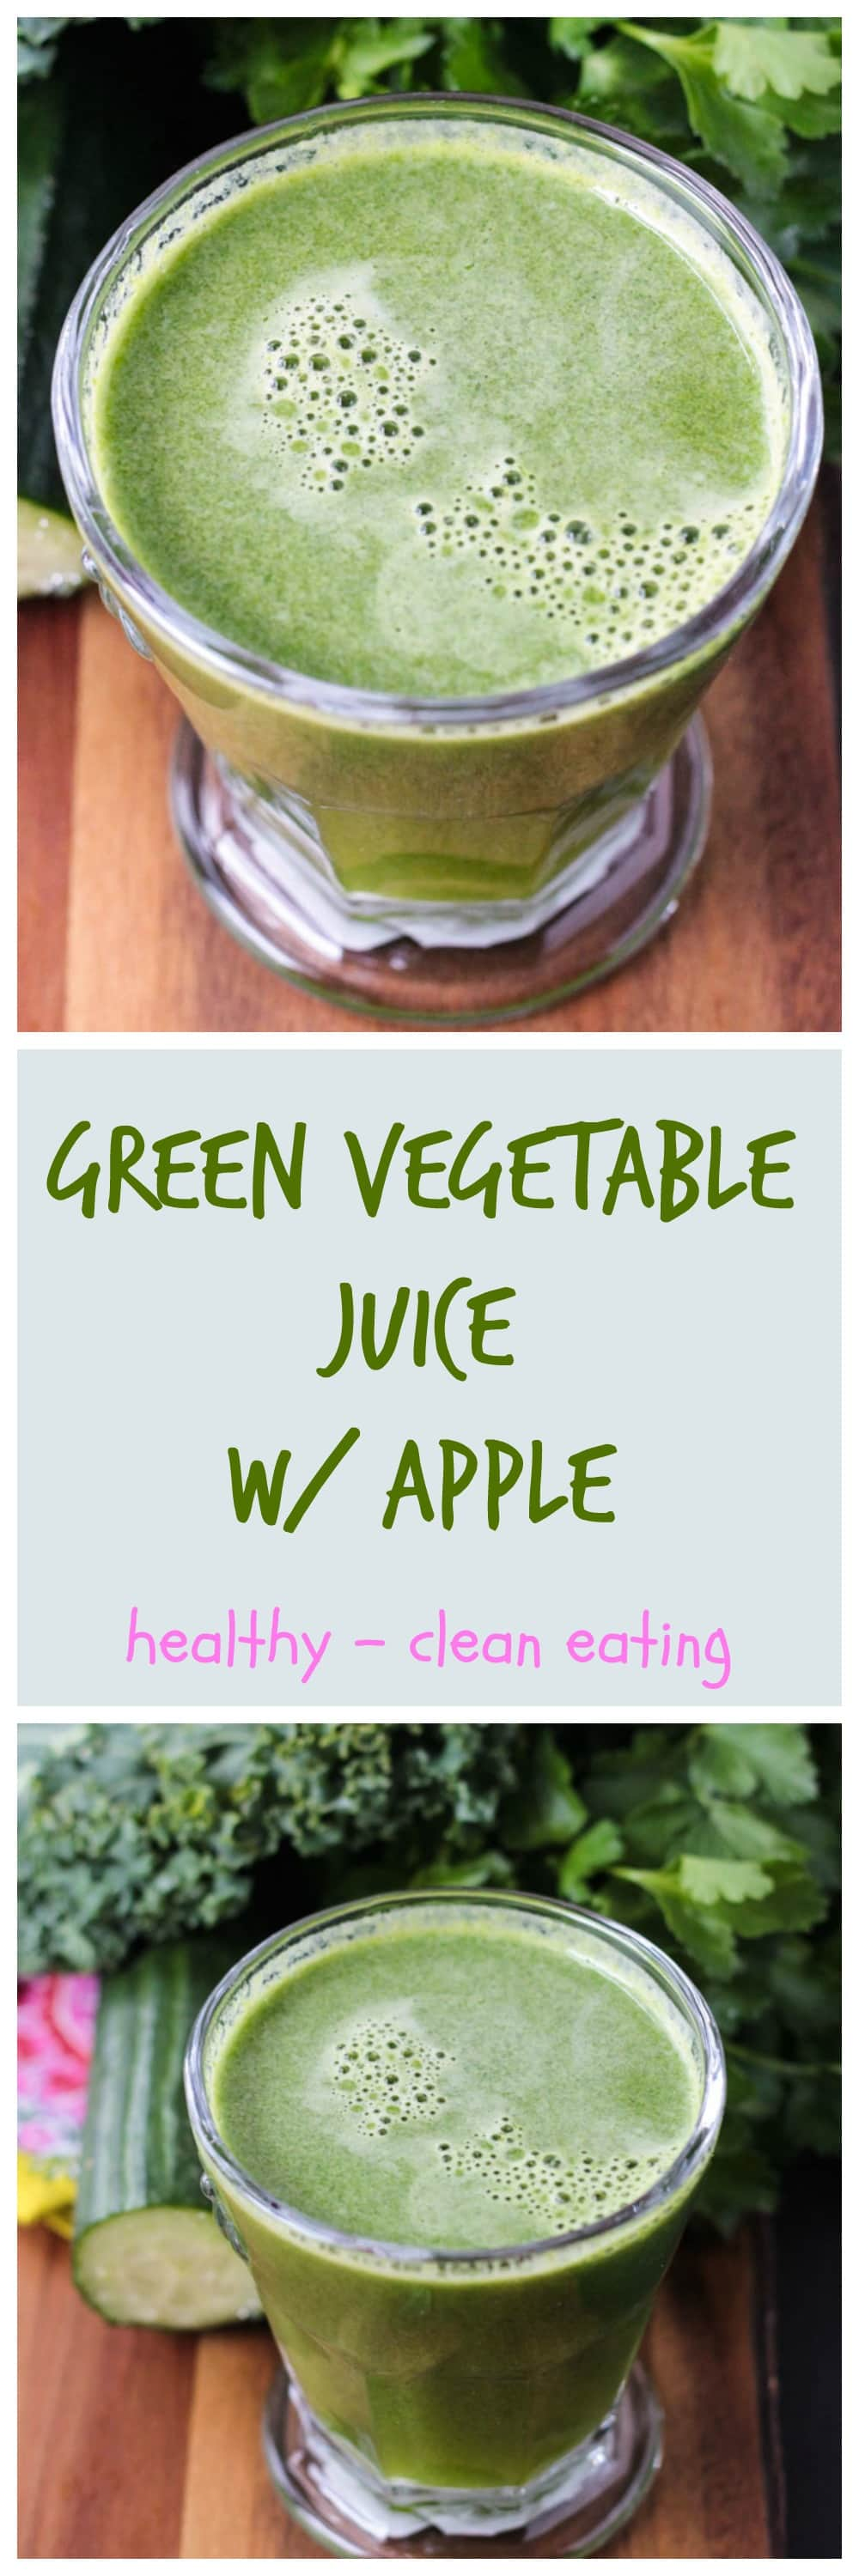 Green Vegetable Juice w/ Apple - healthy green juice sweetened with apple that you will actually enjoy drinking! The flavors are balanced perfectly and this juice is mild enough for even those who are new to juicing. Kids will even love this green vegetable juice!